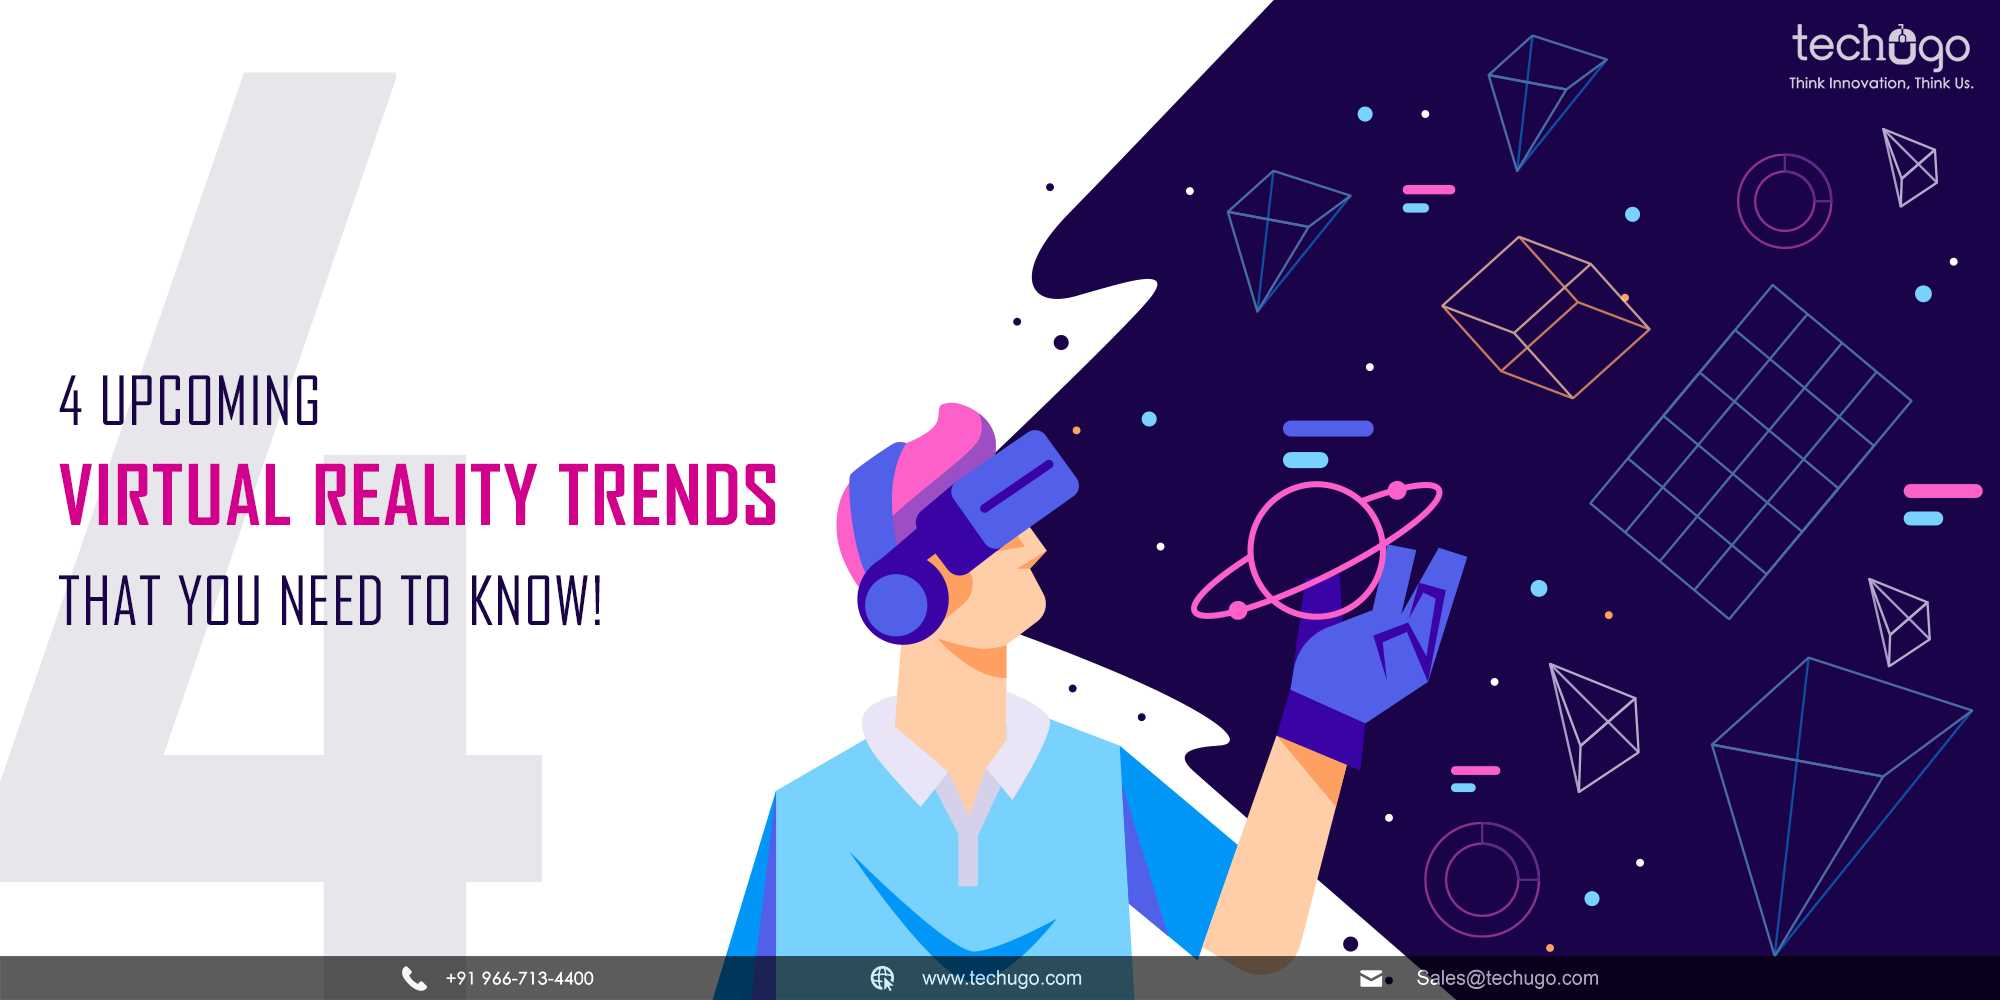 4 Upcoming Virtual Reality Trends That You Need To Know!